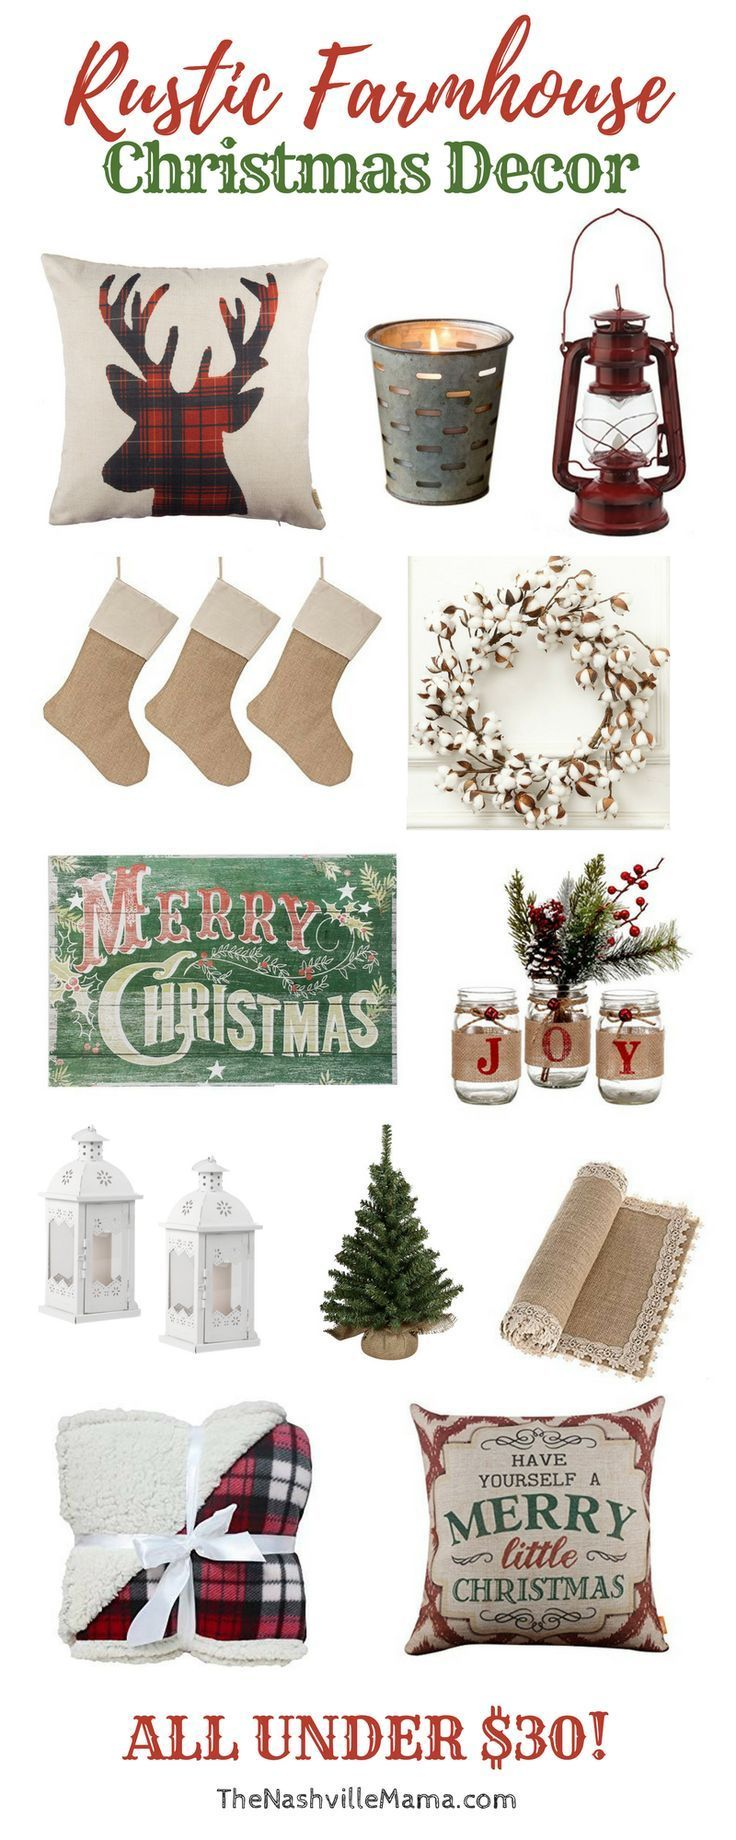 Rustic Farmhouse Christmas Decor. All budget friendly and affordable!